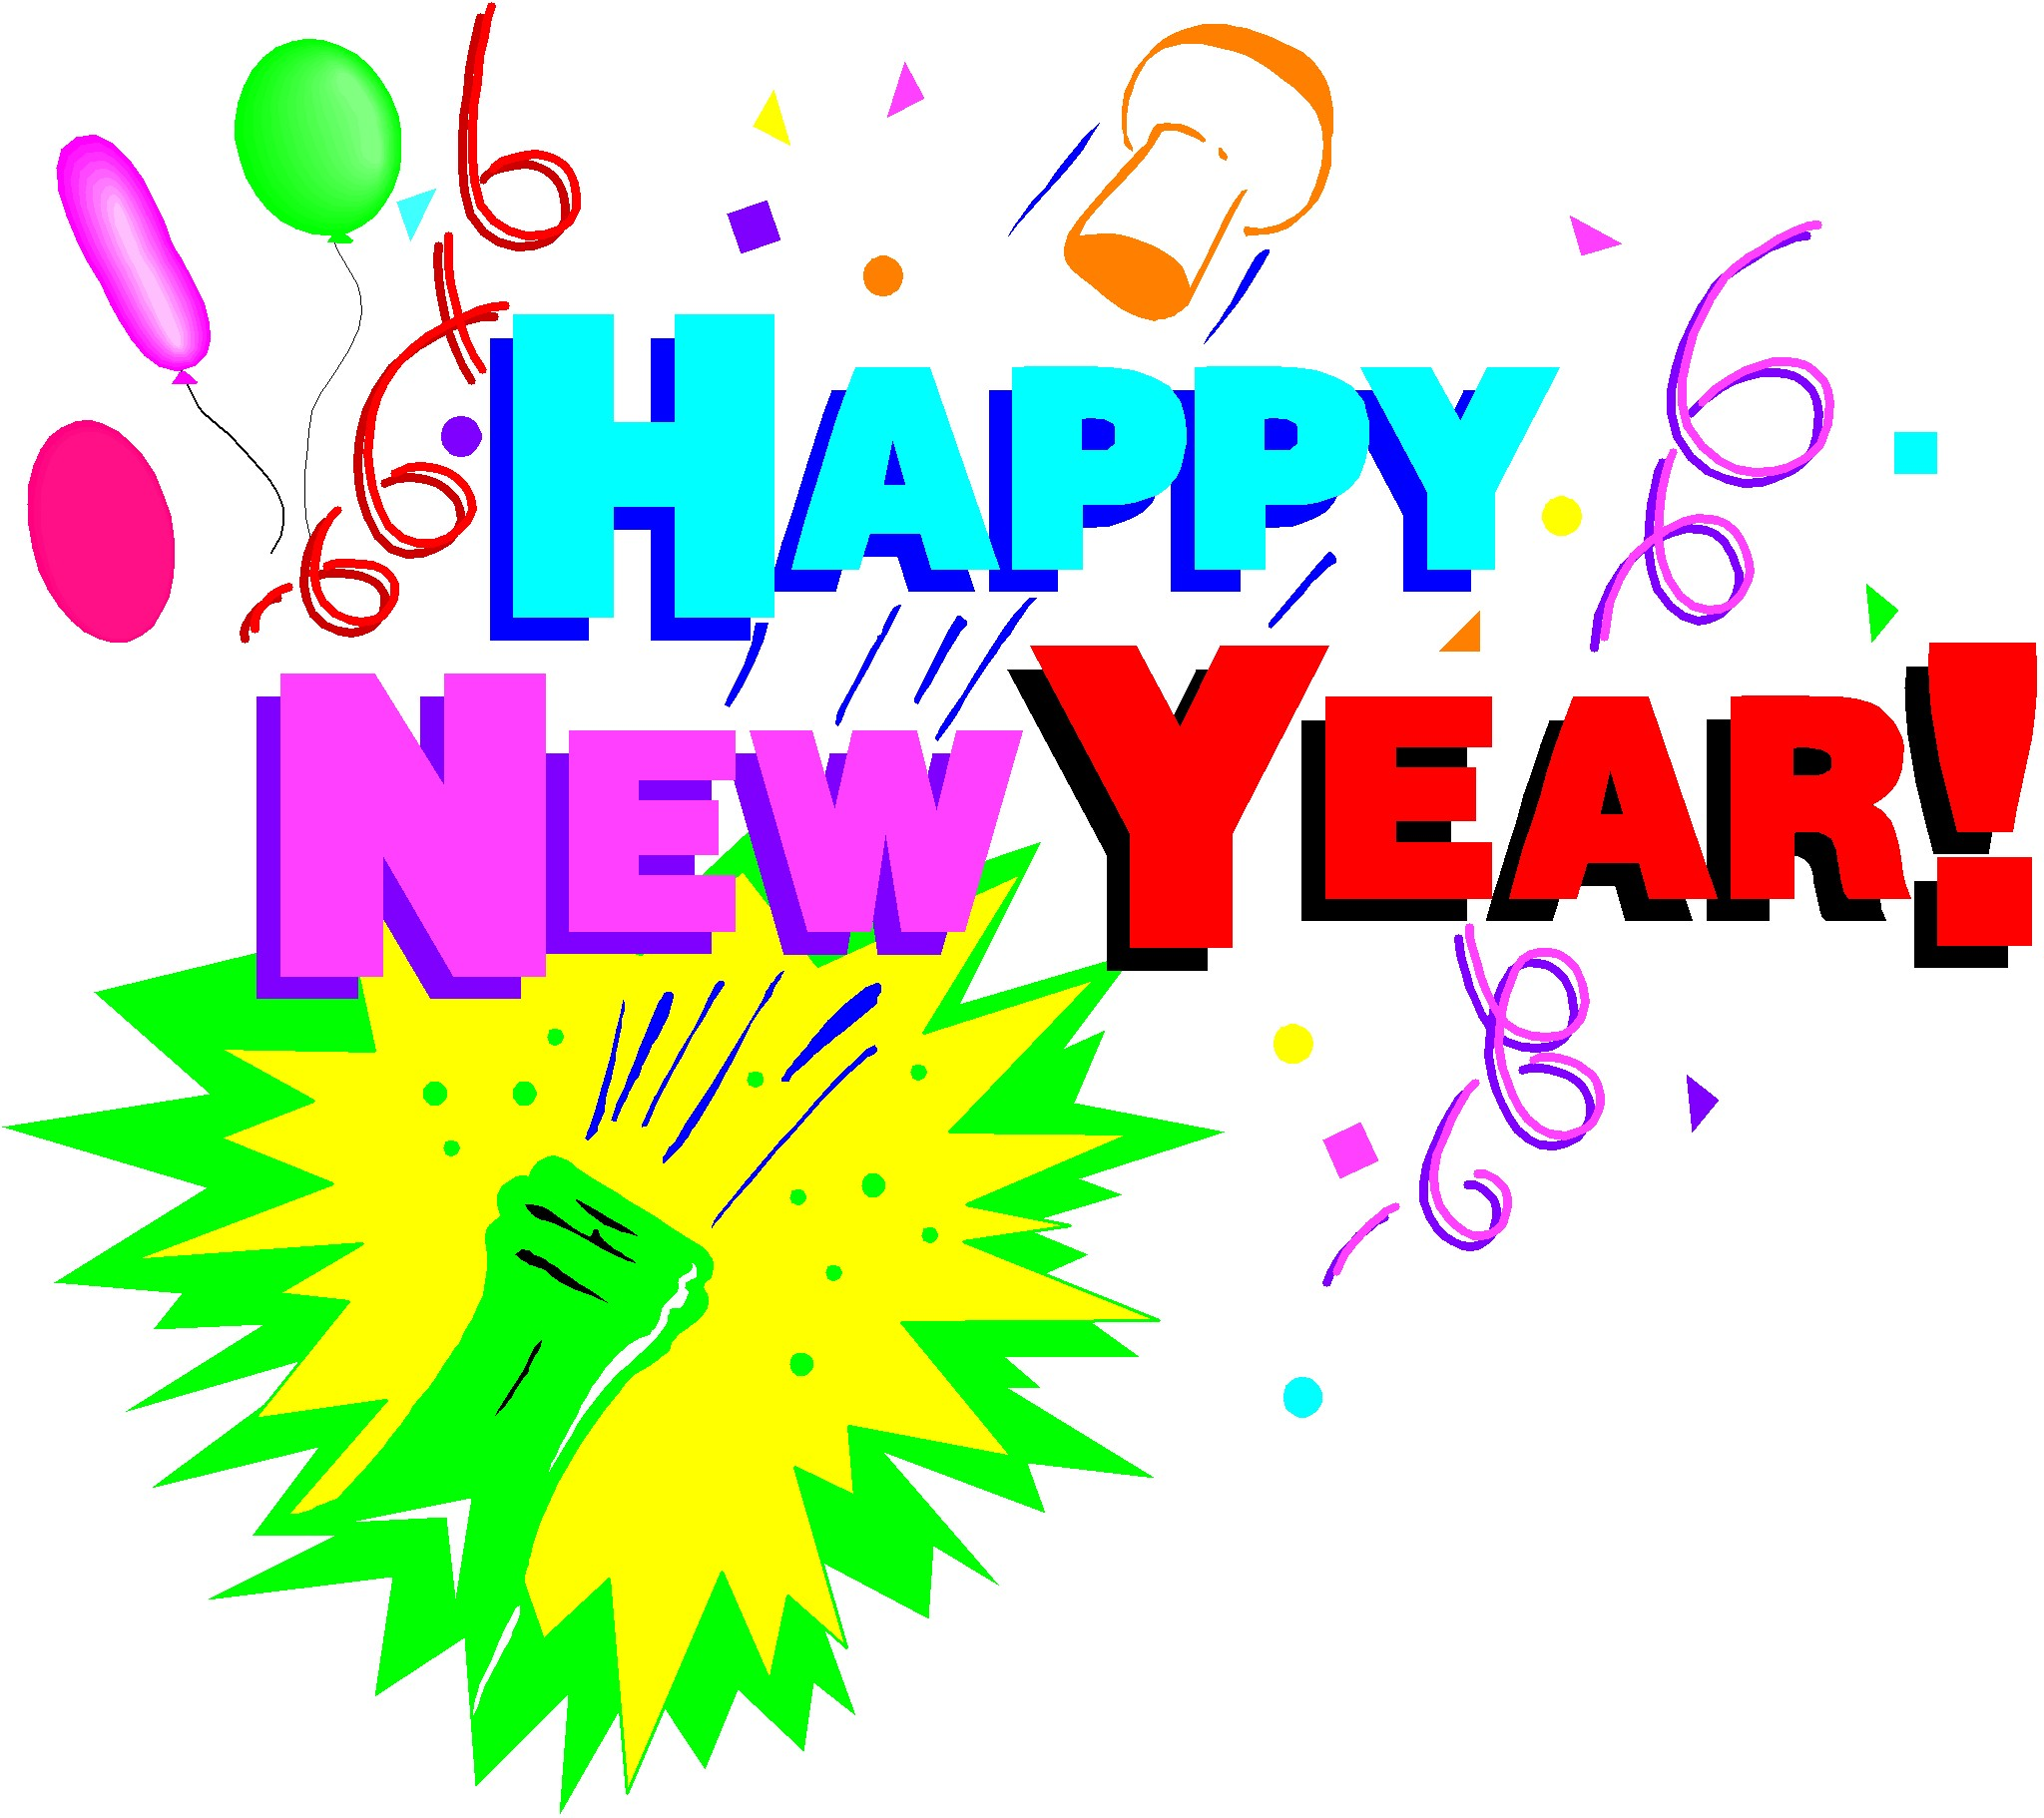 Free New Years Eve Party Images, Download Free Clip Art, Free Clip.